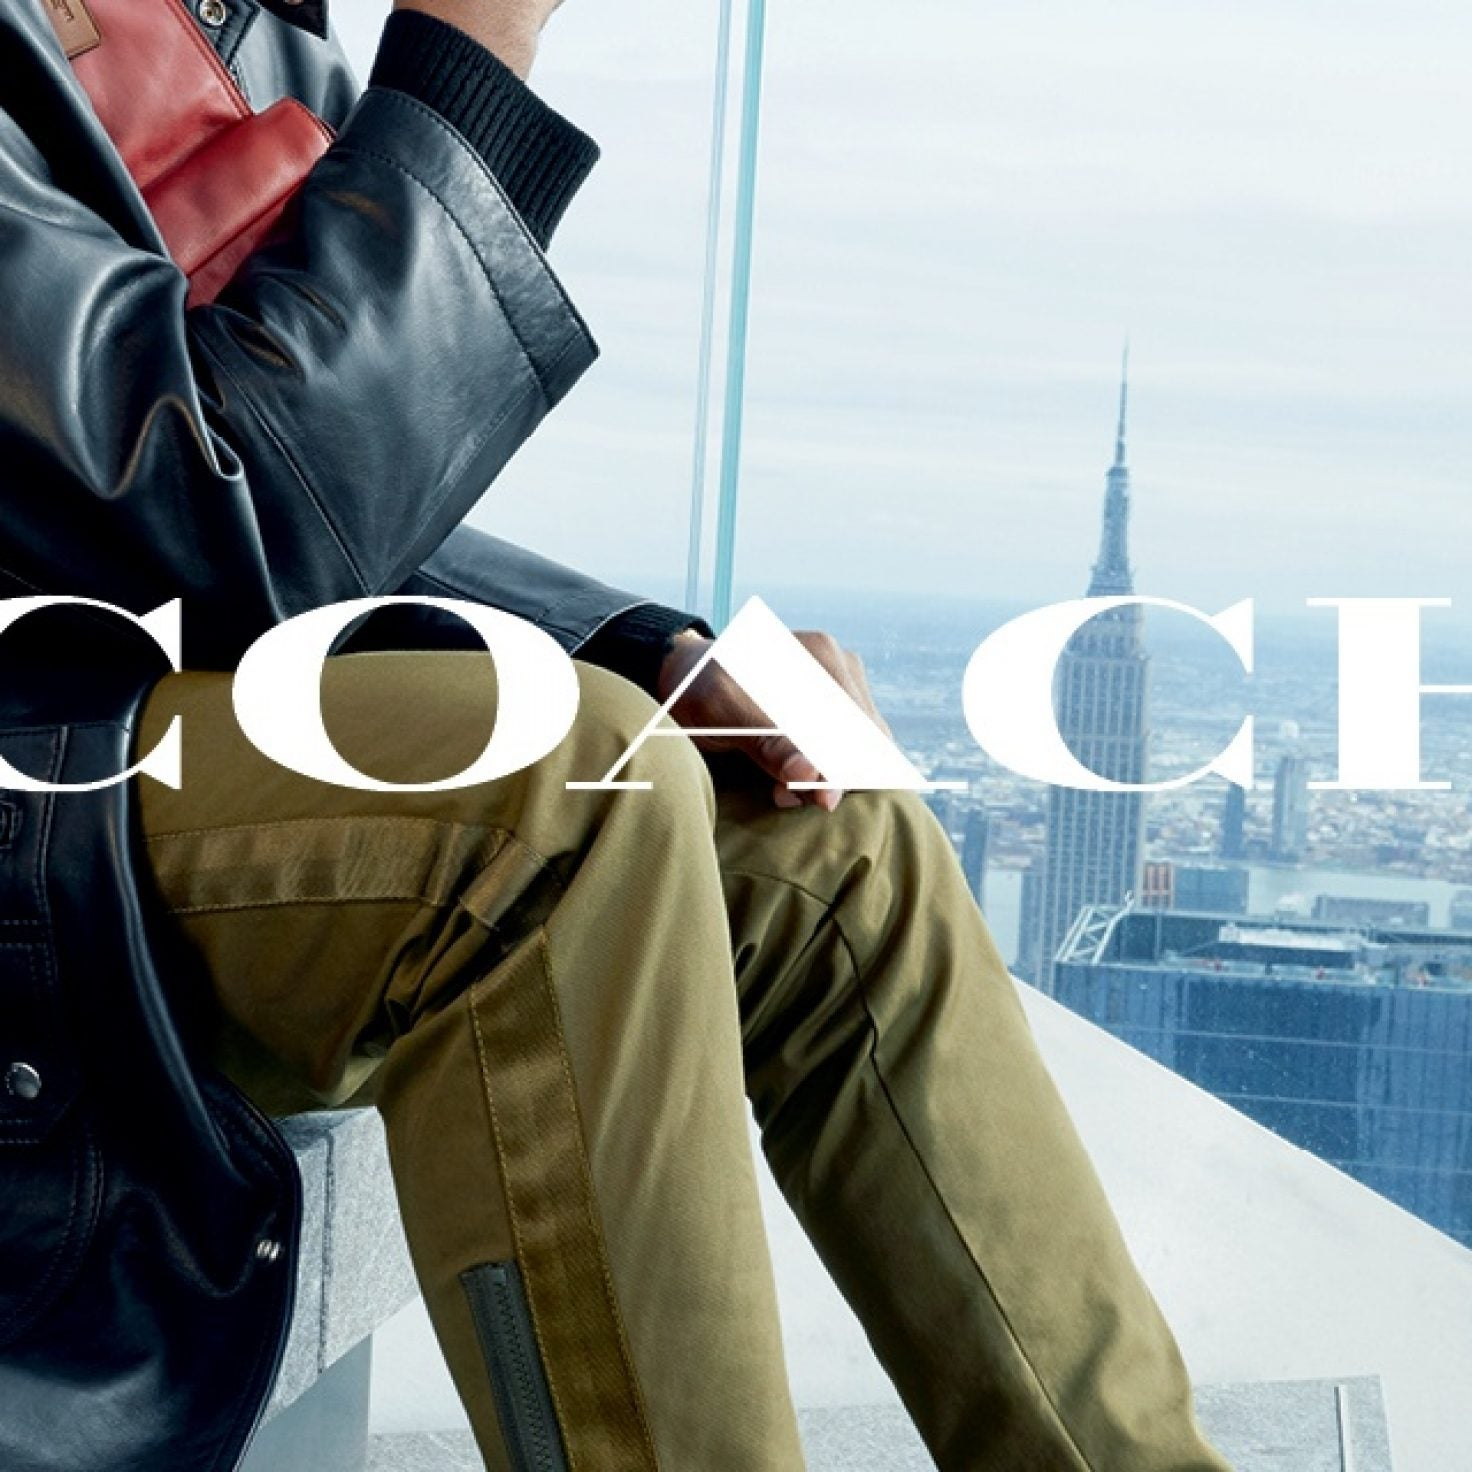 Coach Launches A New Collection Of Footwear